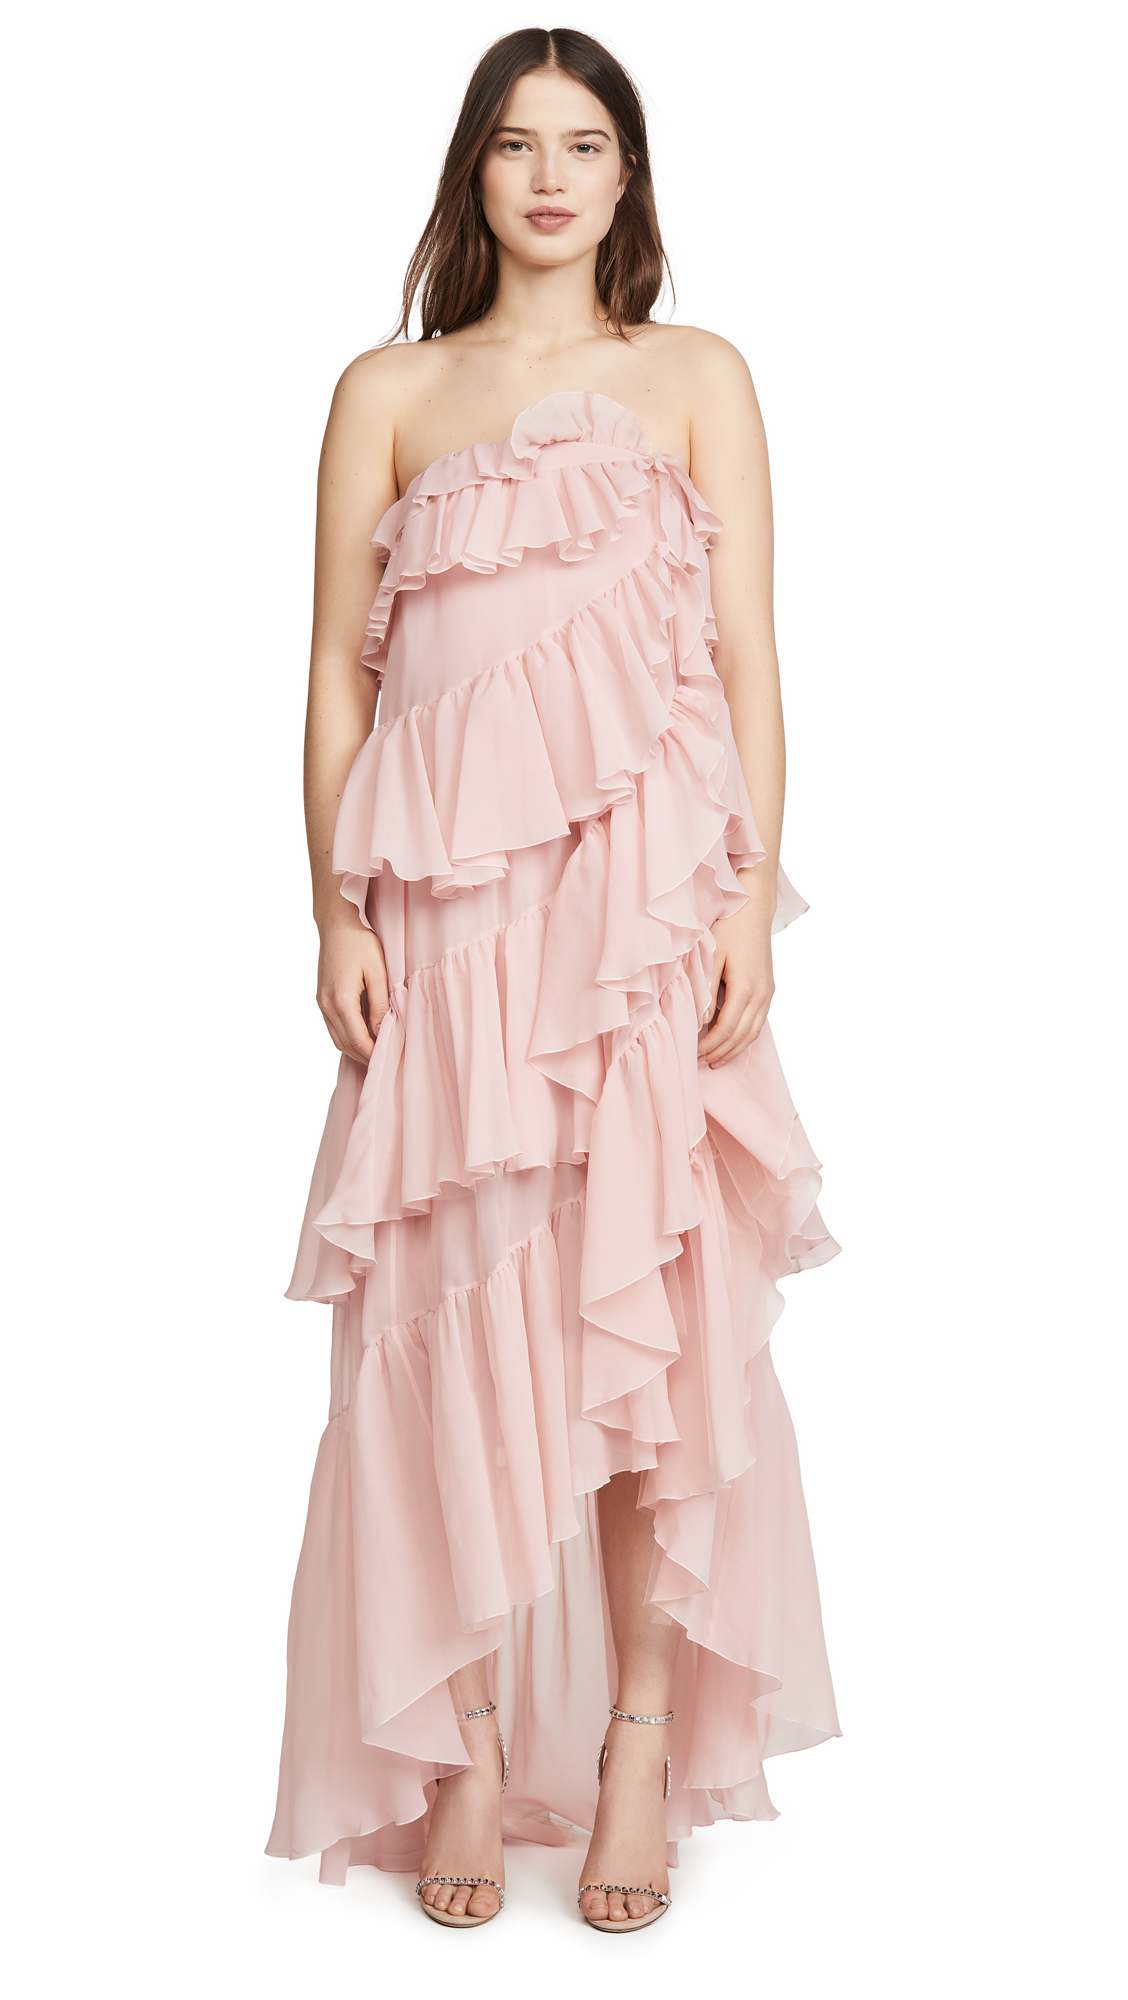 Buy Giambattista Valli Strapless Tiered Gown online beautiful Giambattista Valli Dresses, Strapless